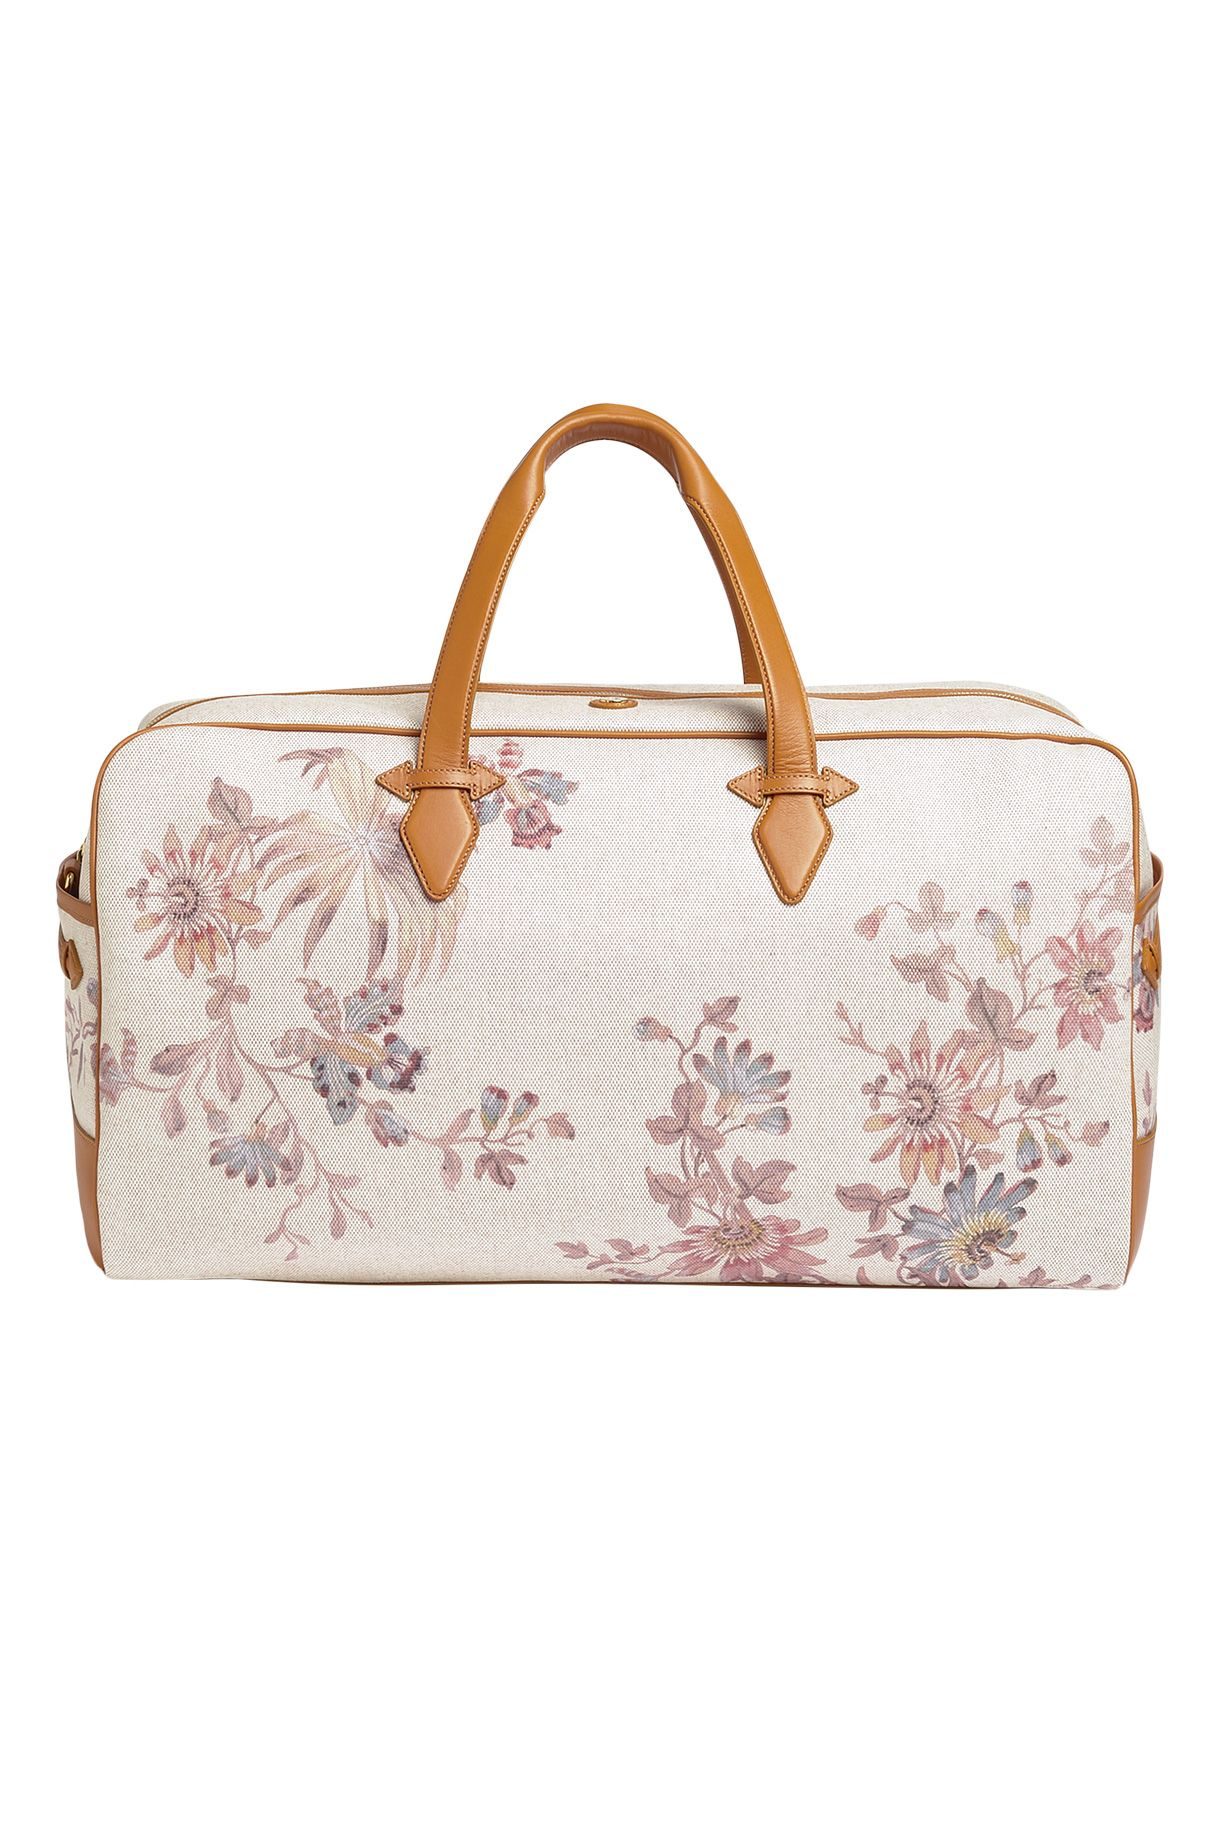 "<p>Traveling by car means no overhead constraints or worry about damaging (or losing) your luggage. Make the most of it with a pretty designer piece.</p><p><em data-redactor-tag=""em"" data-verified=""redactor"">Paravel Scout Floral Grand Tour, $445; </em><a href=""https://tourparavel.com/products/scout-floral-grand-tour/scout"" target=""_blank"" data-tracking-id=""recirc-text-link""><em data-redactor-tag=""em"" data-verified=""redactor"">tourparavel.com</em></a></p>"